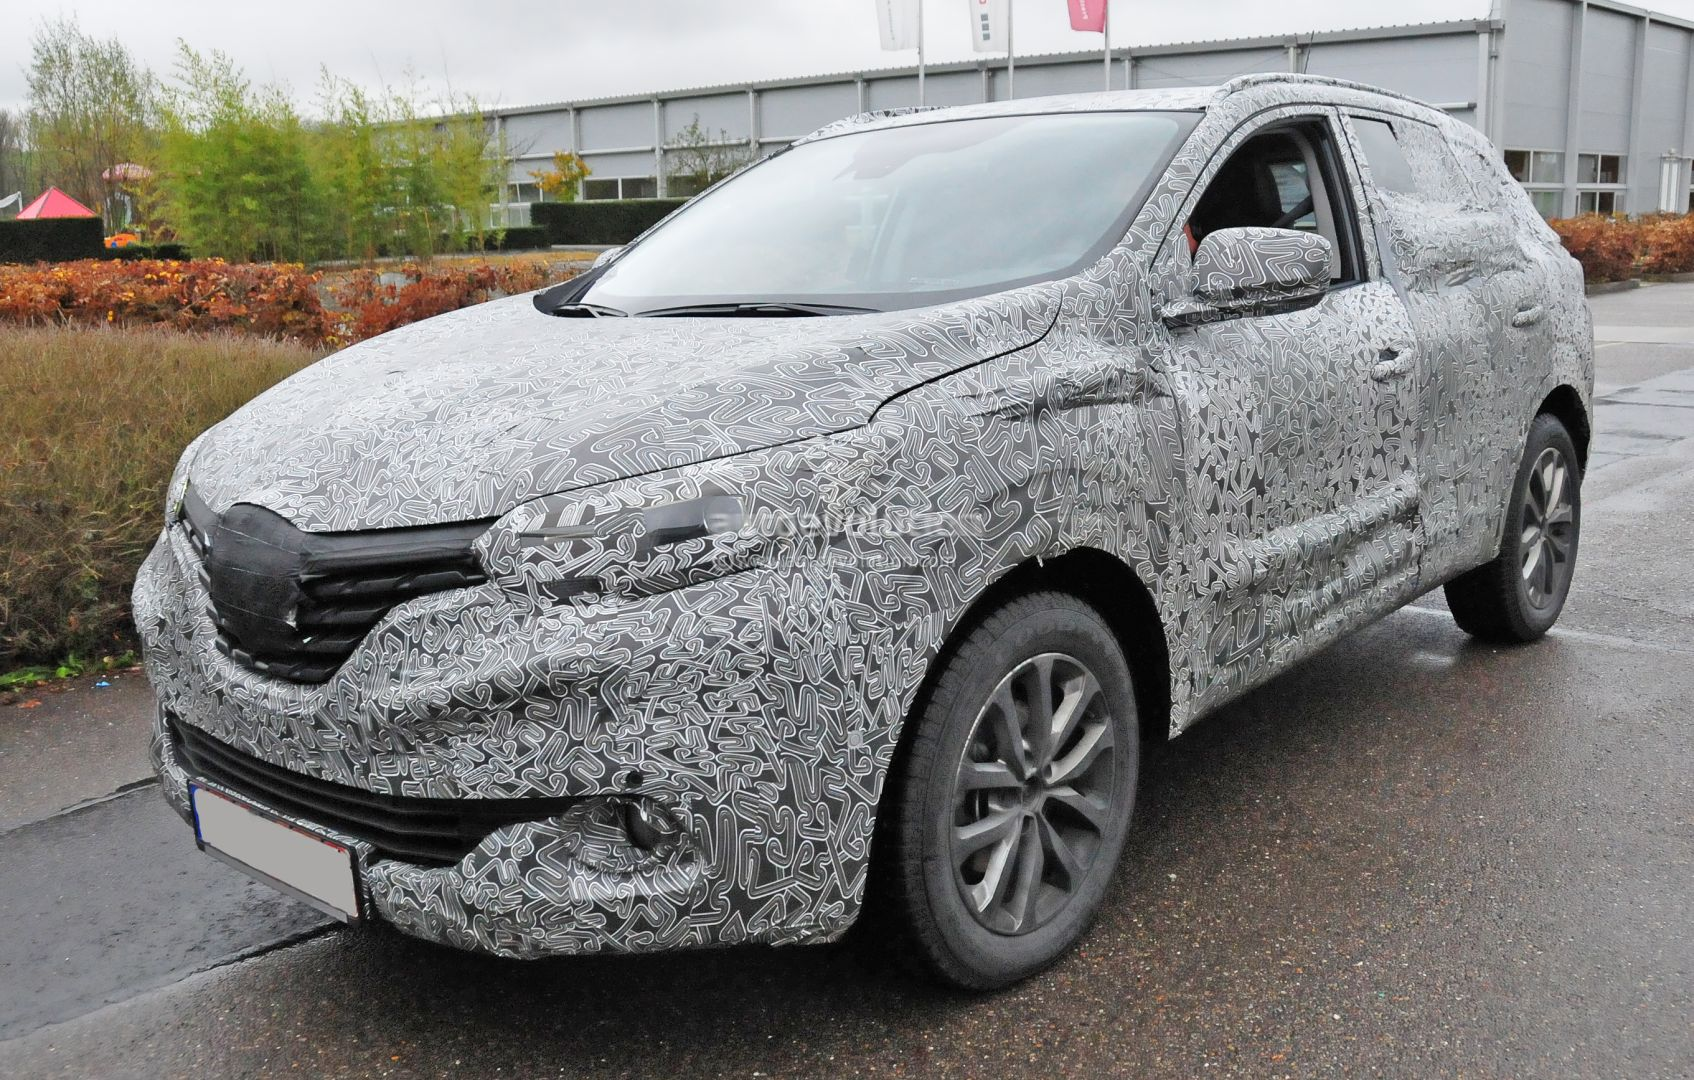 2015 renault koleos crossover spyshots reveal interior digital dashboard autoevolution. Black Bedroom Furniture Sets. Home Design Ideas